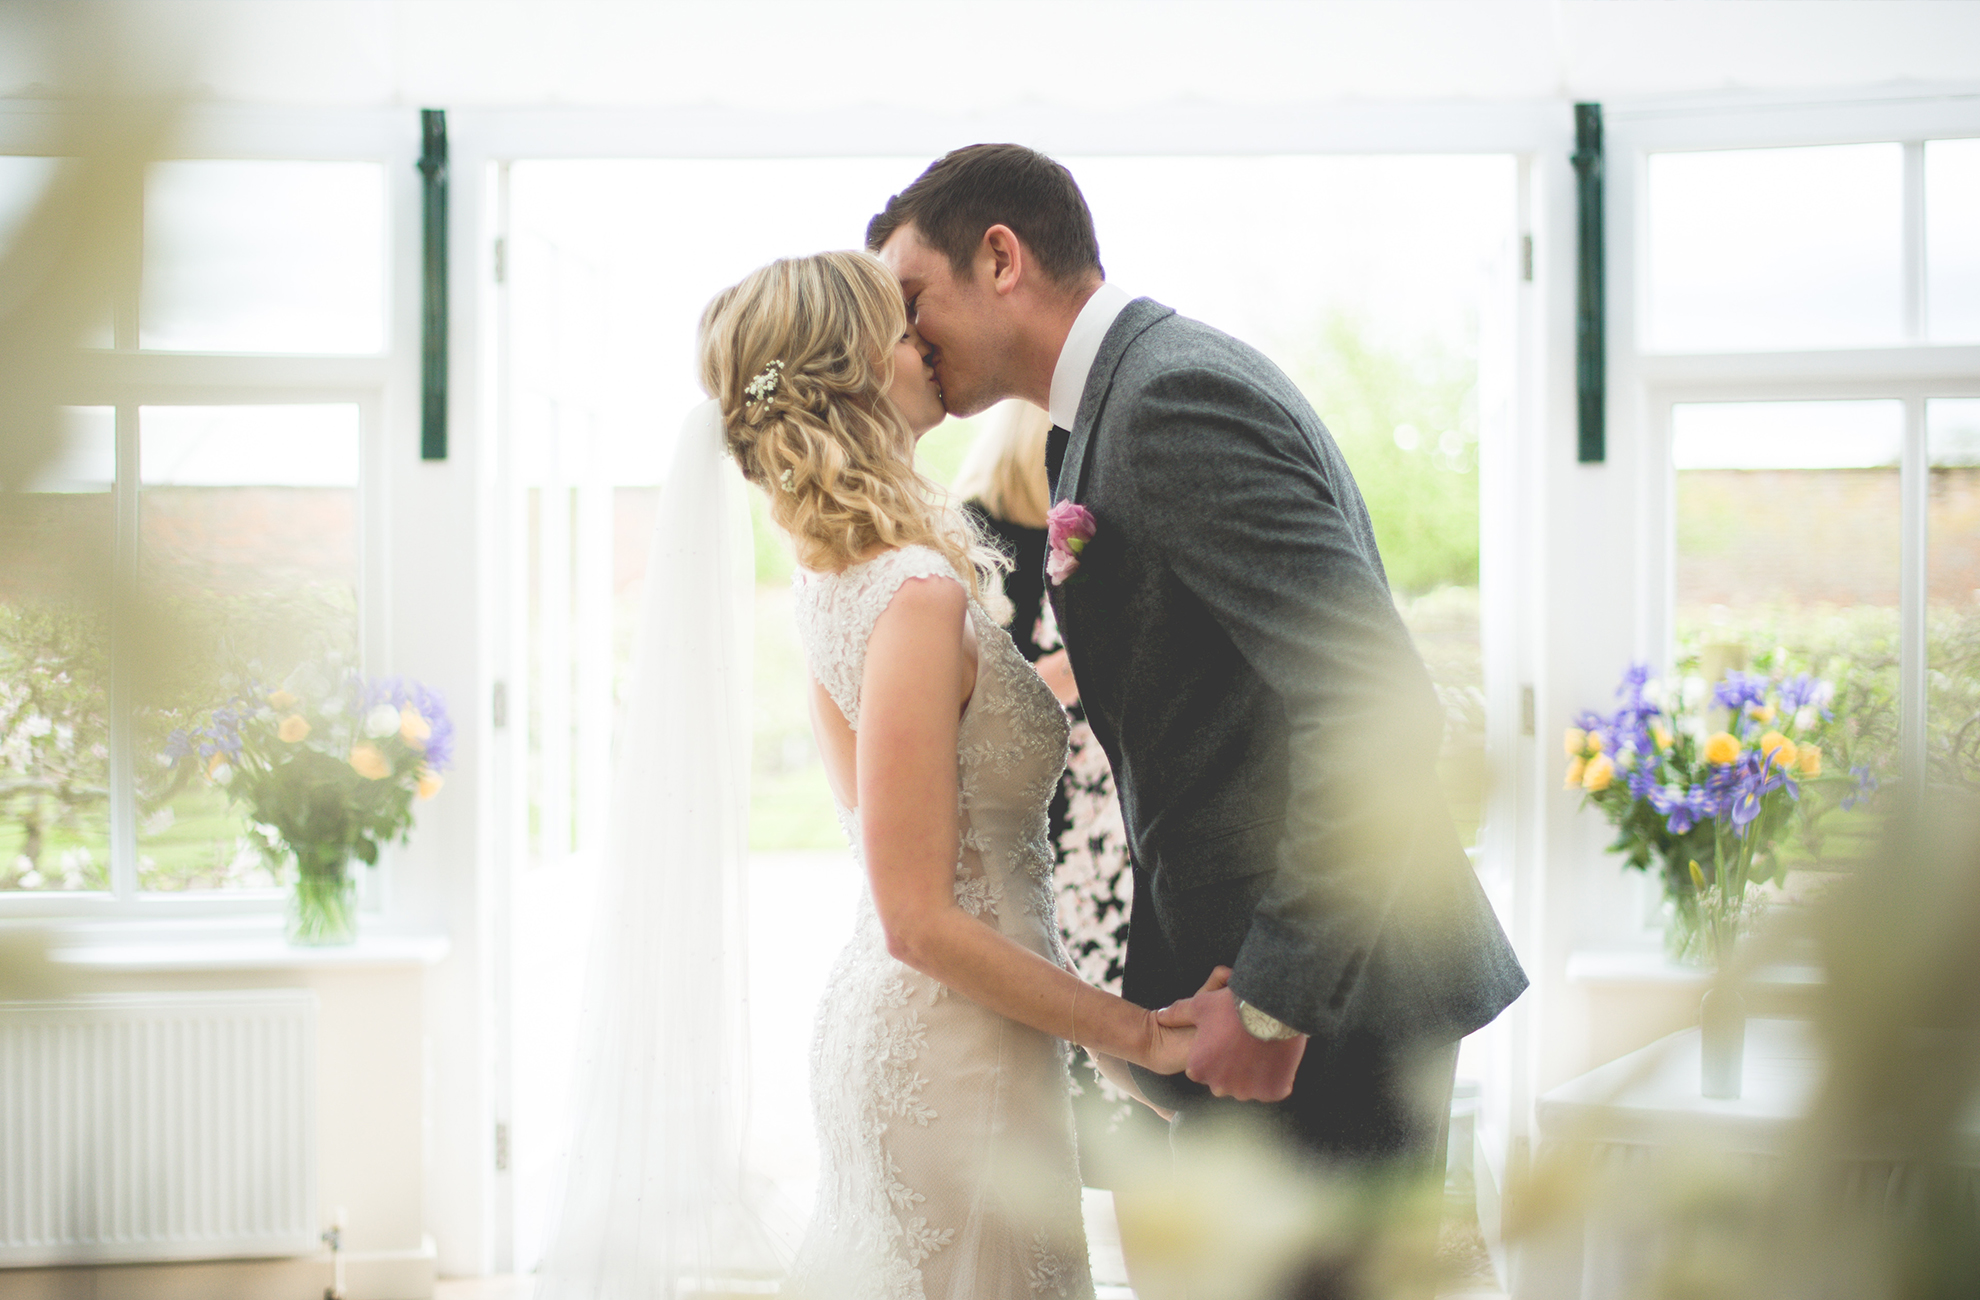 The happy bride and groom kiss after saying I do in the Glasshouse – wedding ceremony venues Cheshire